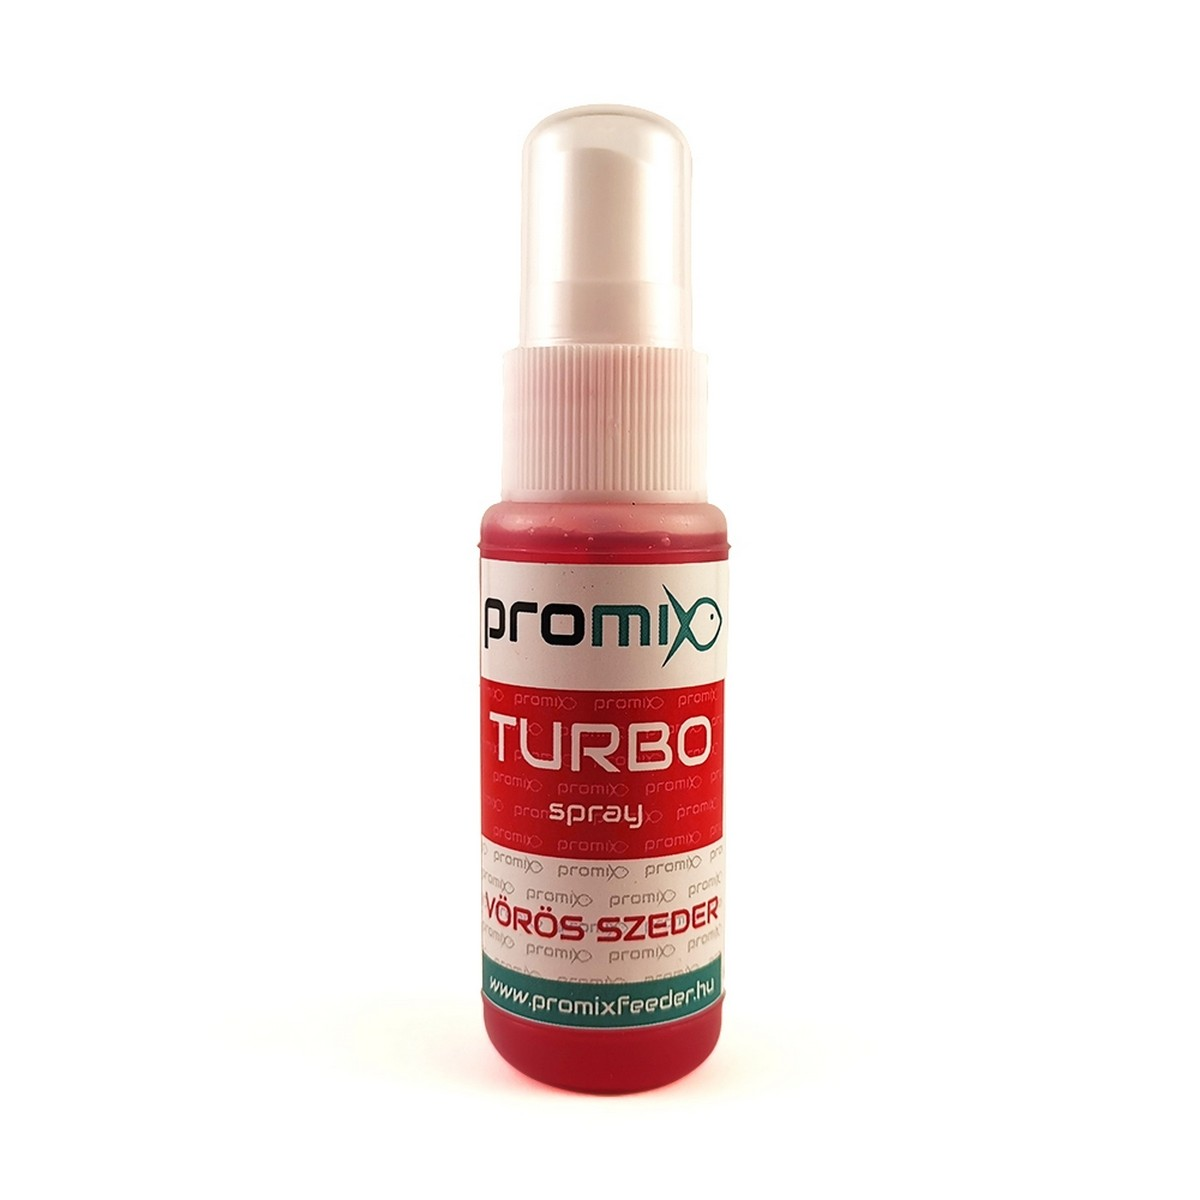 PROMIX TURBO SPRAY VÖRÖS SZEDER